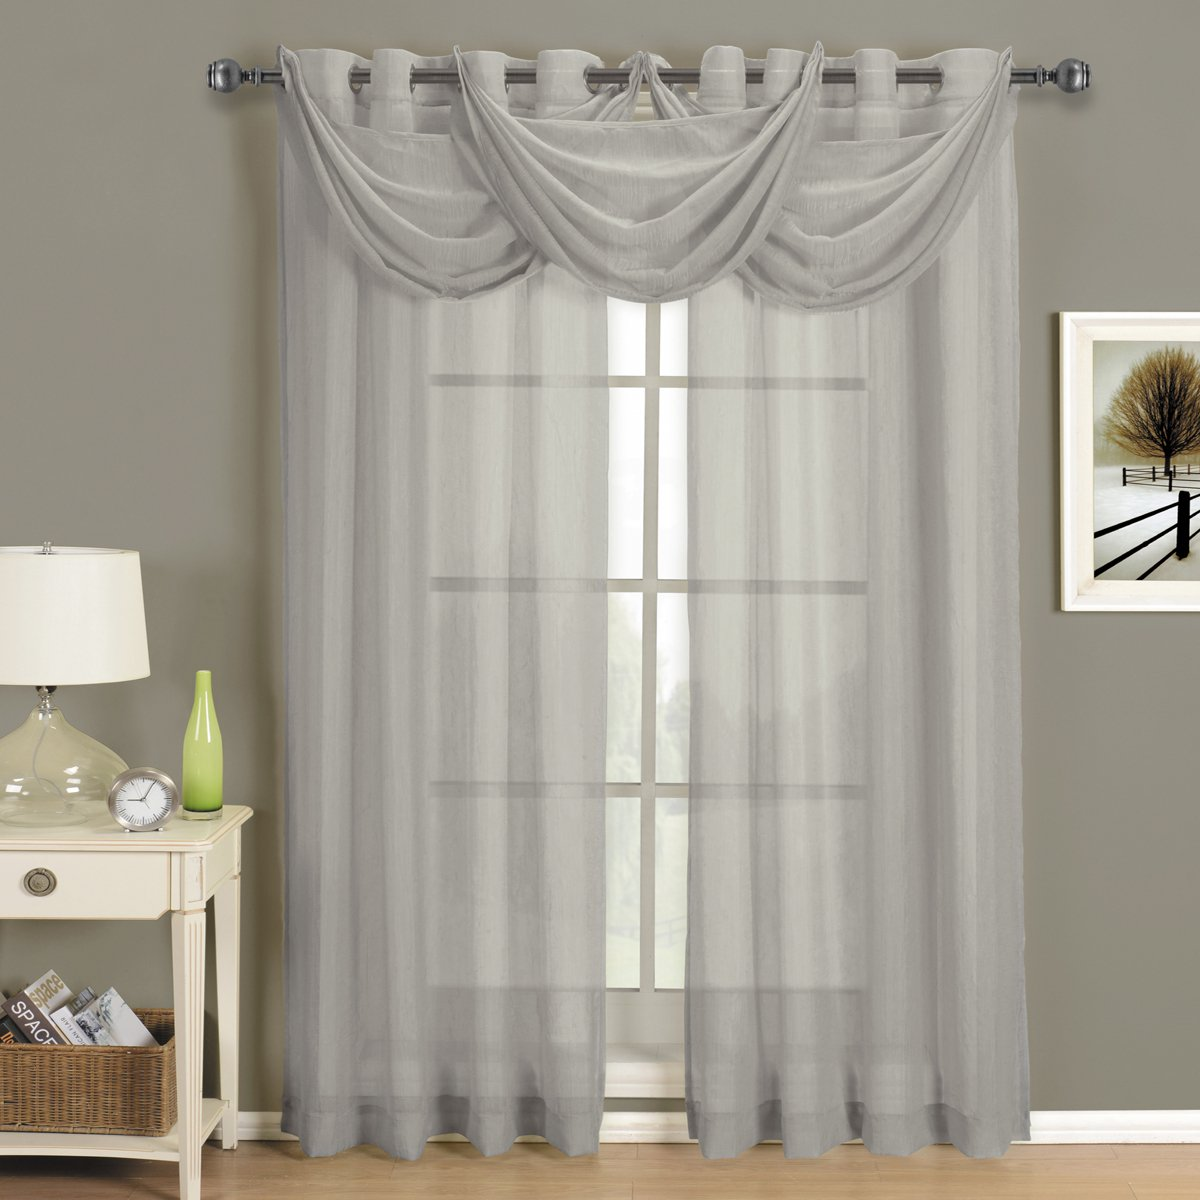 curtain copy voile or panels of polyester white products cotton panel handmade valance sheer